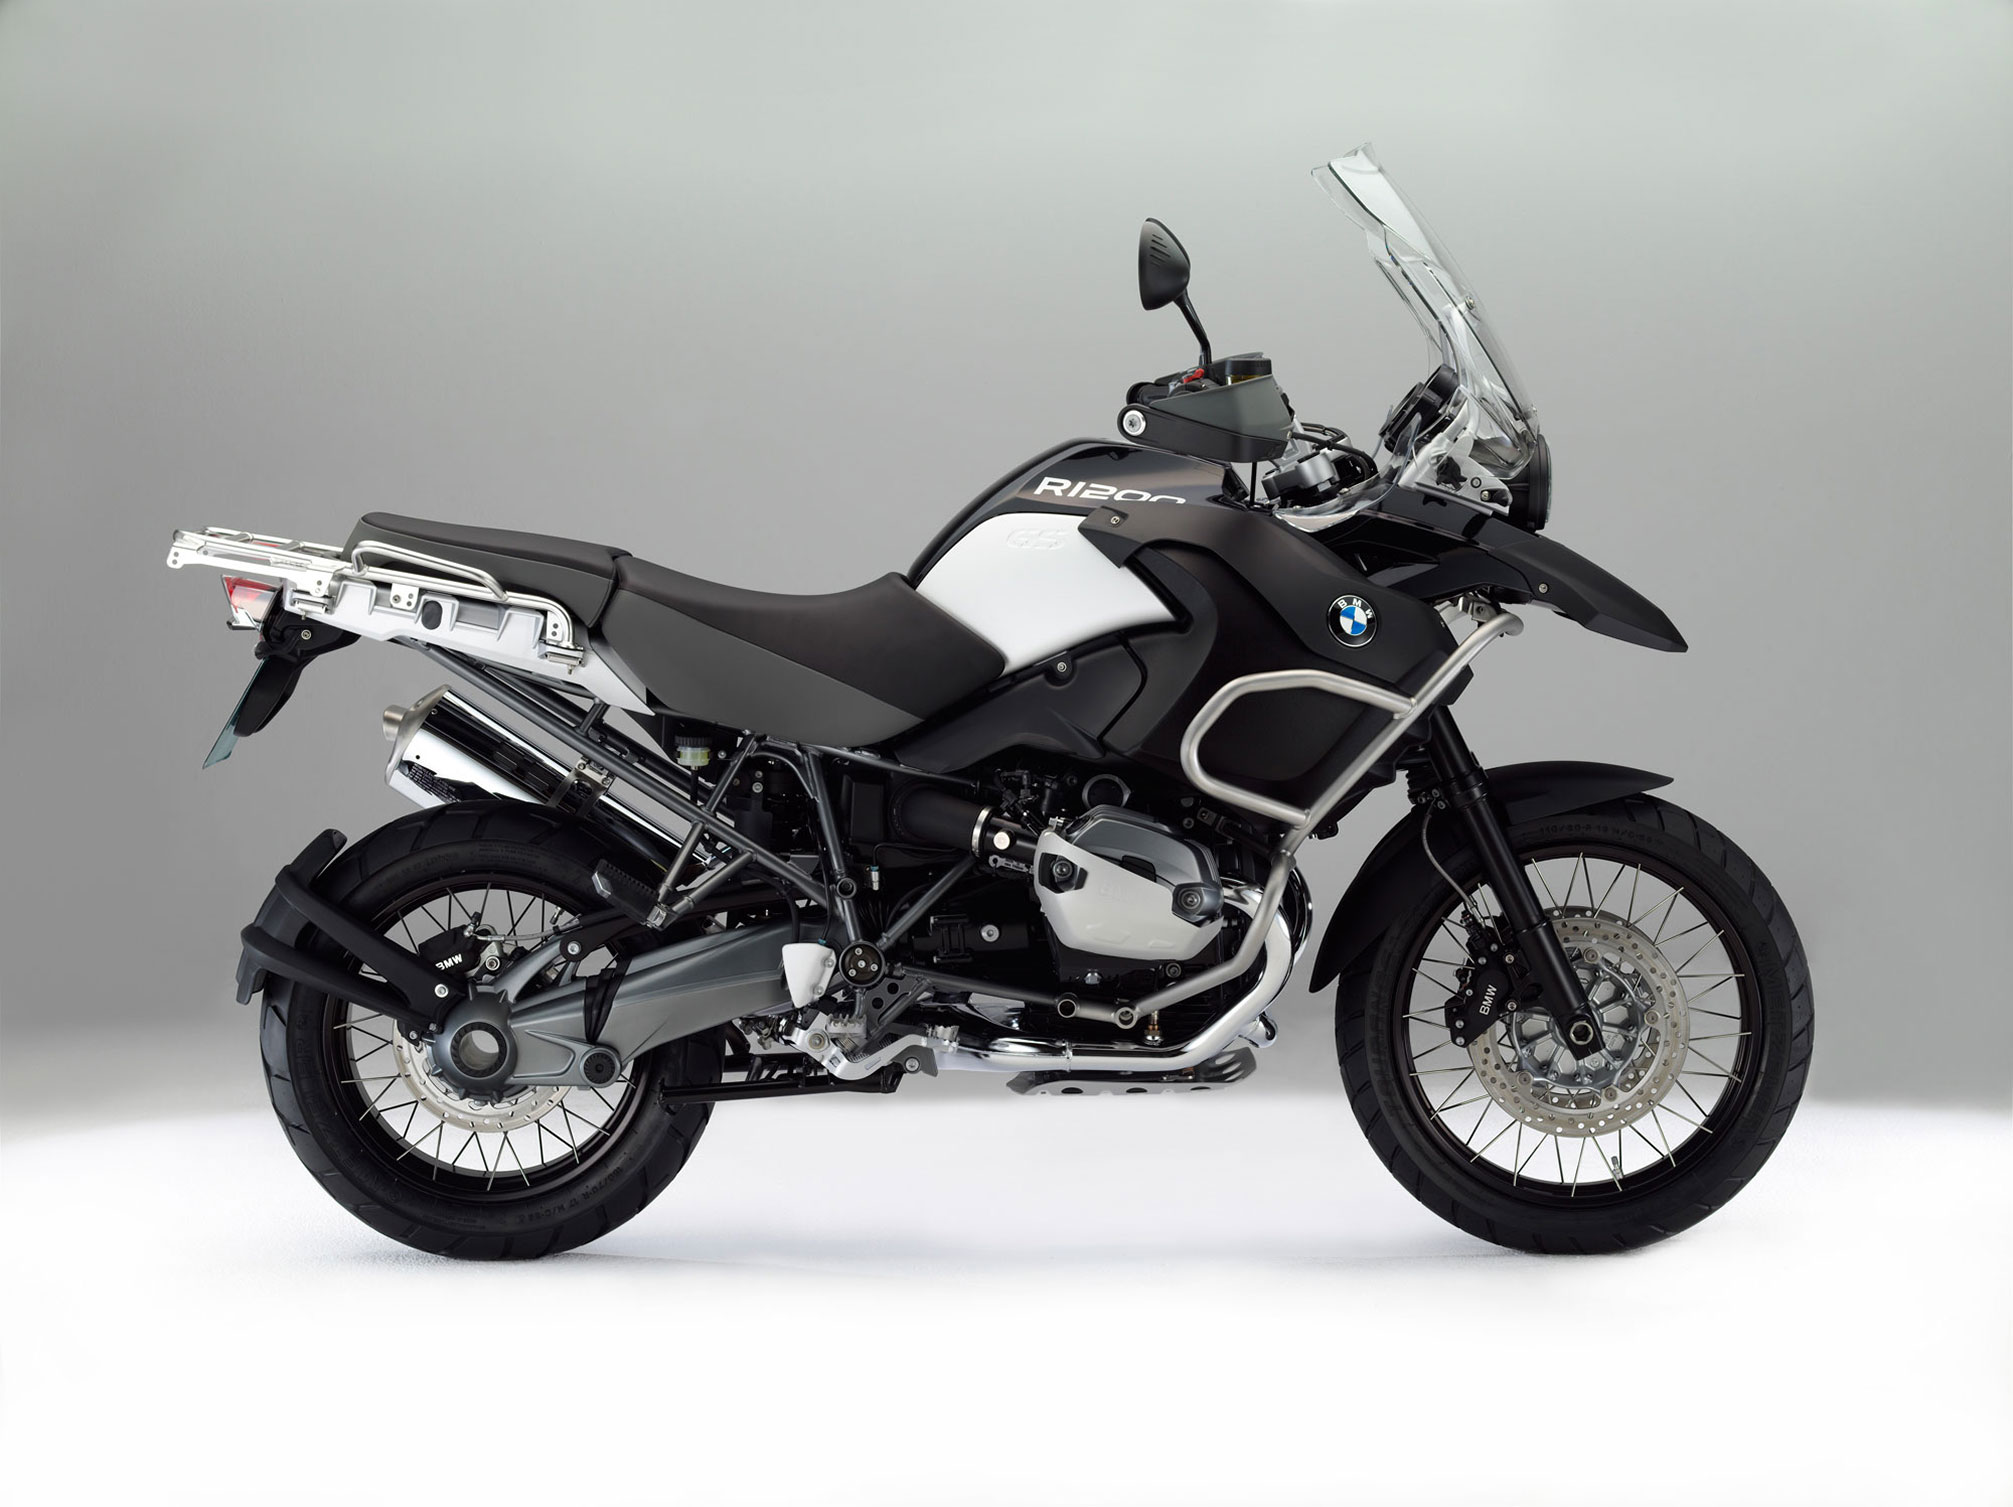 bmw r 1200 gs adventure triple black specs 2012 2013 autoevolution. Black Bedroom Furniture Sets. Home Design Ideas